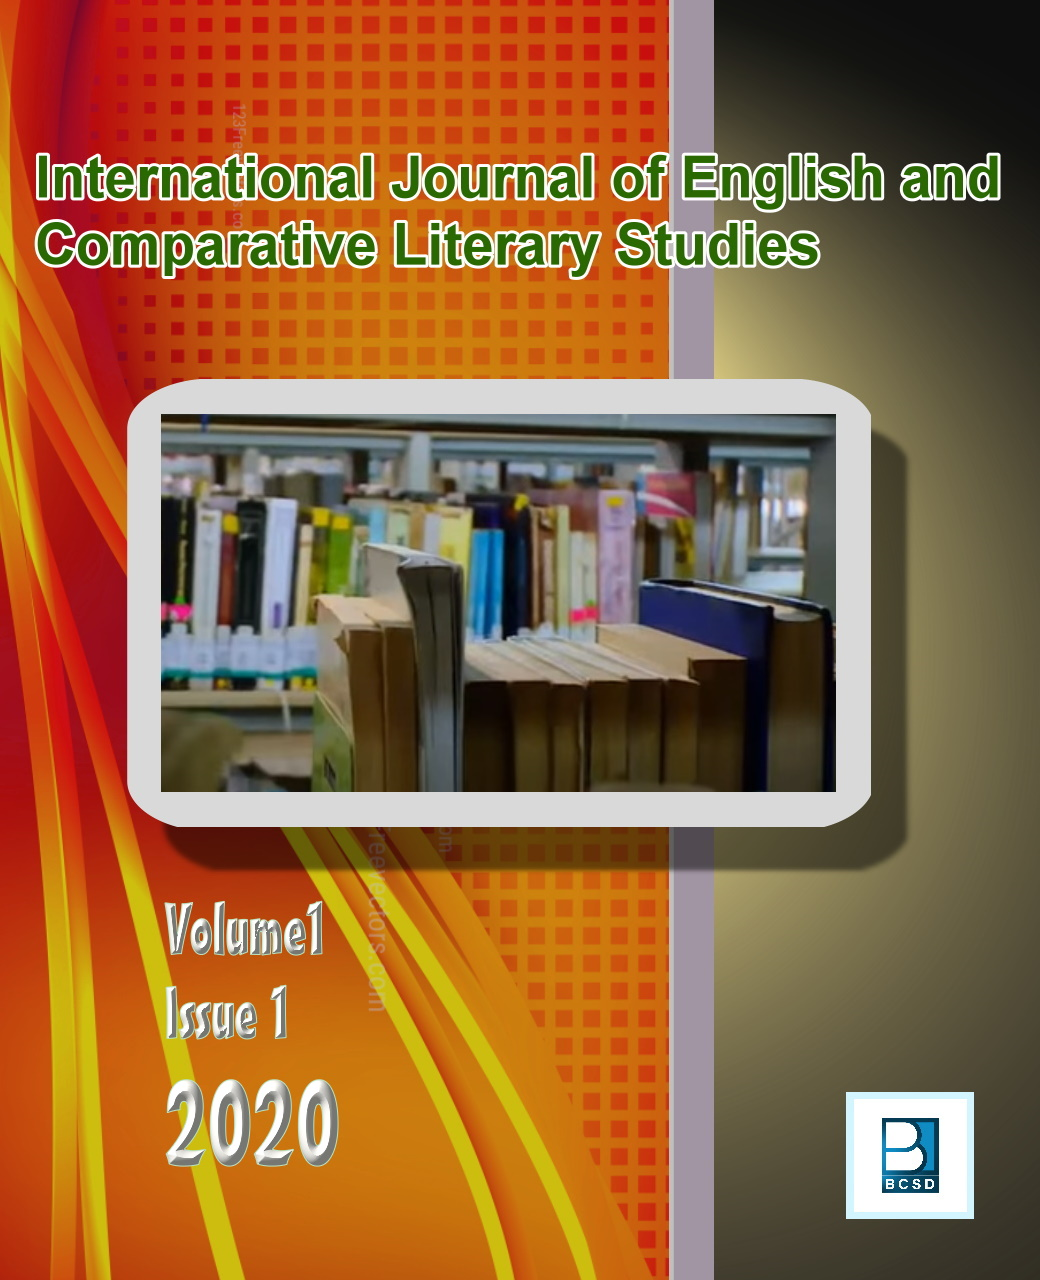 View Vol. 1 No. 1 (2020): International Journal of English and Comparative Literary Studies